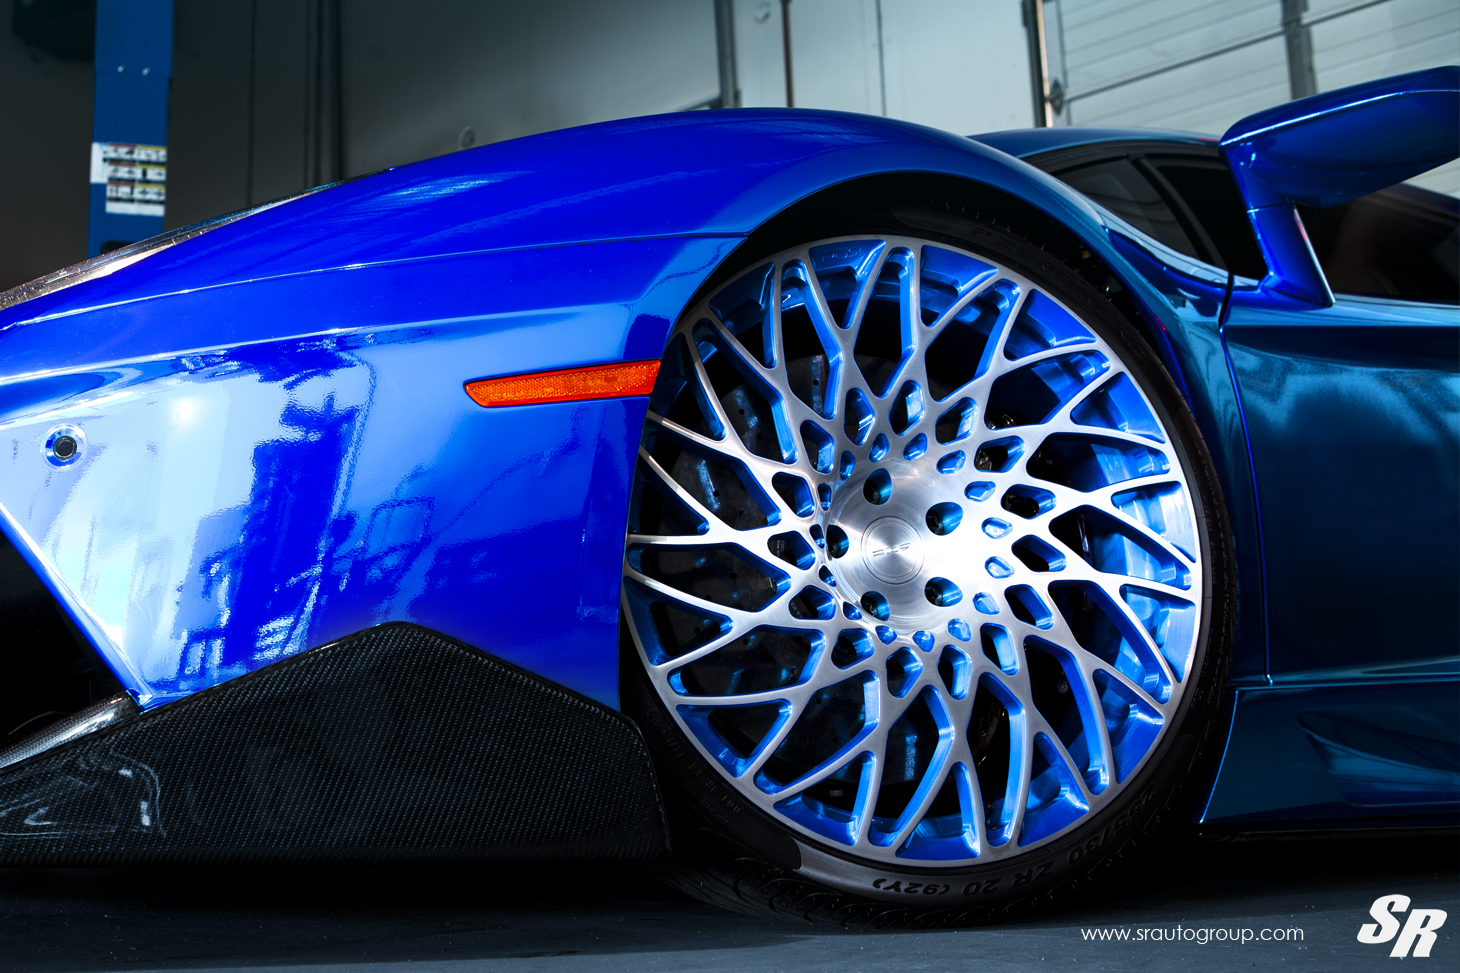 Electric Blue Aventador Gets Outrageous Pur Disc Style